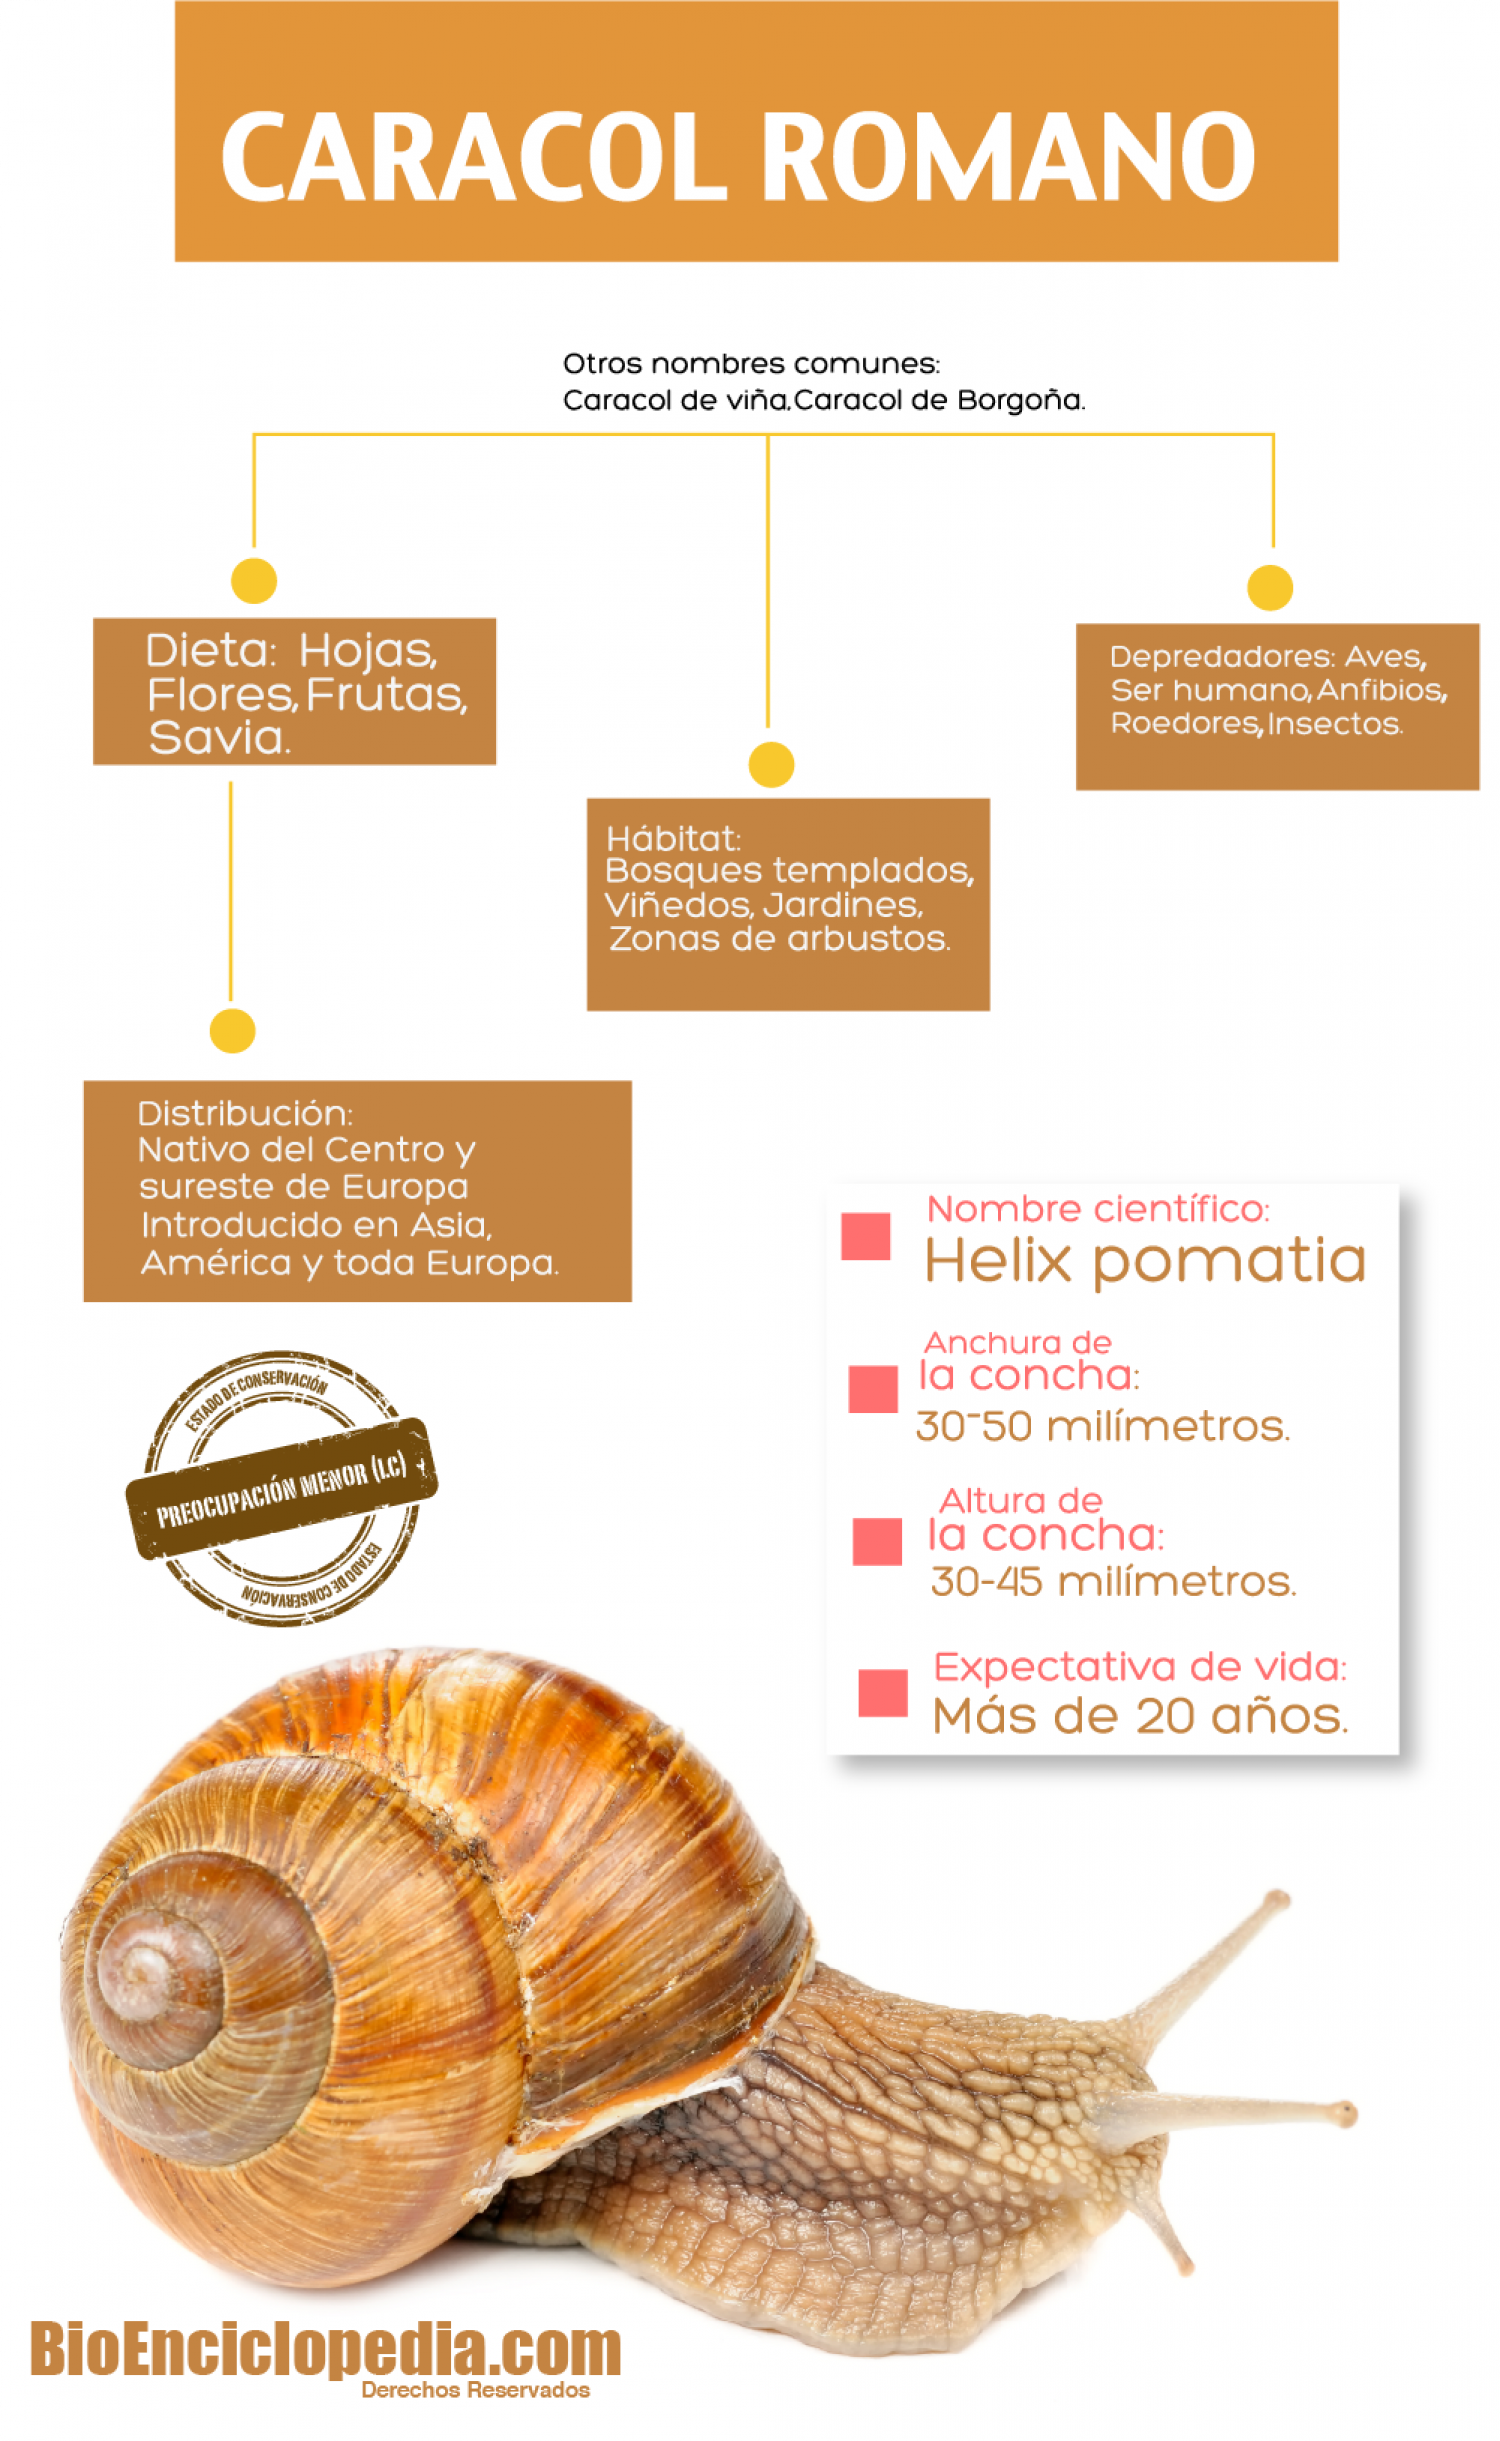 Caracol Romano Infographic